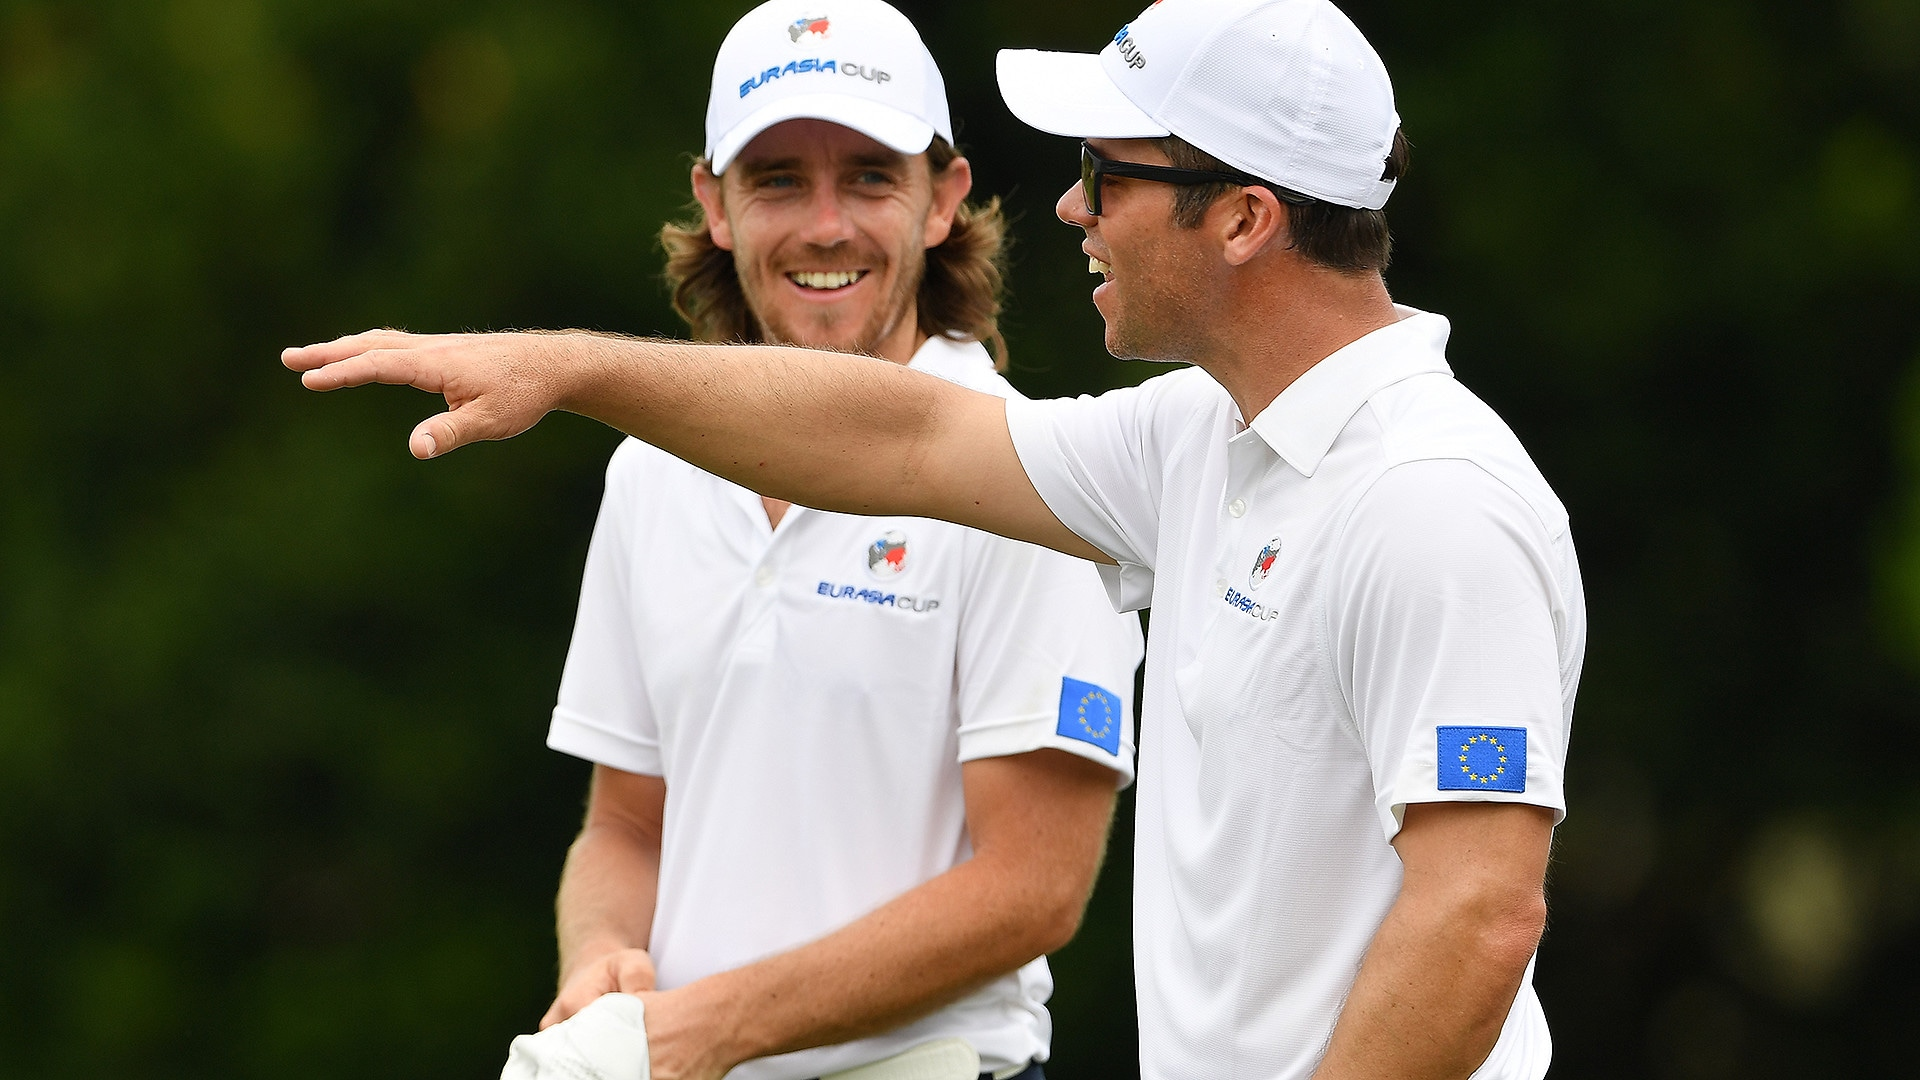 Tommy Fleetwood and Paul Casey at the 2018 EurAsia Cup.